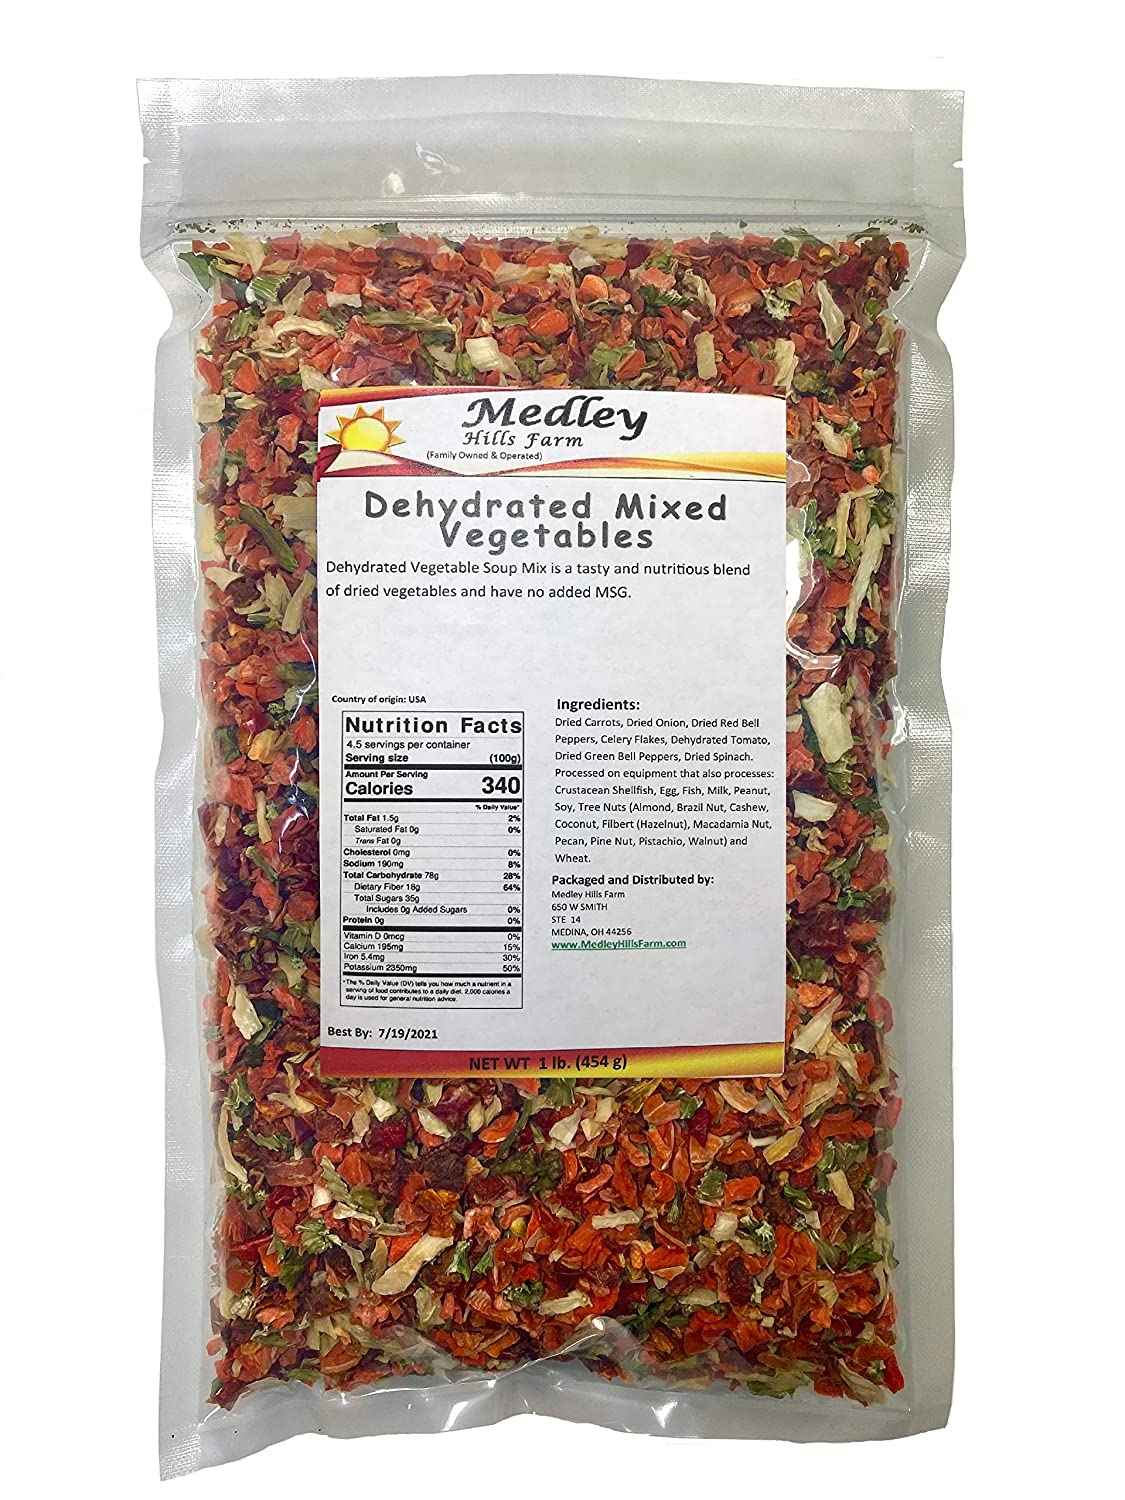 Dehydrated Mixed Vegetables Medley Hills All Soup Virginia Beach Mall G Natural farm Special price